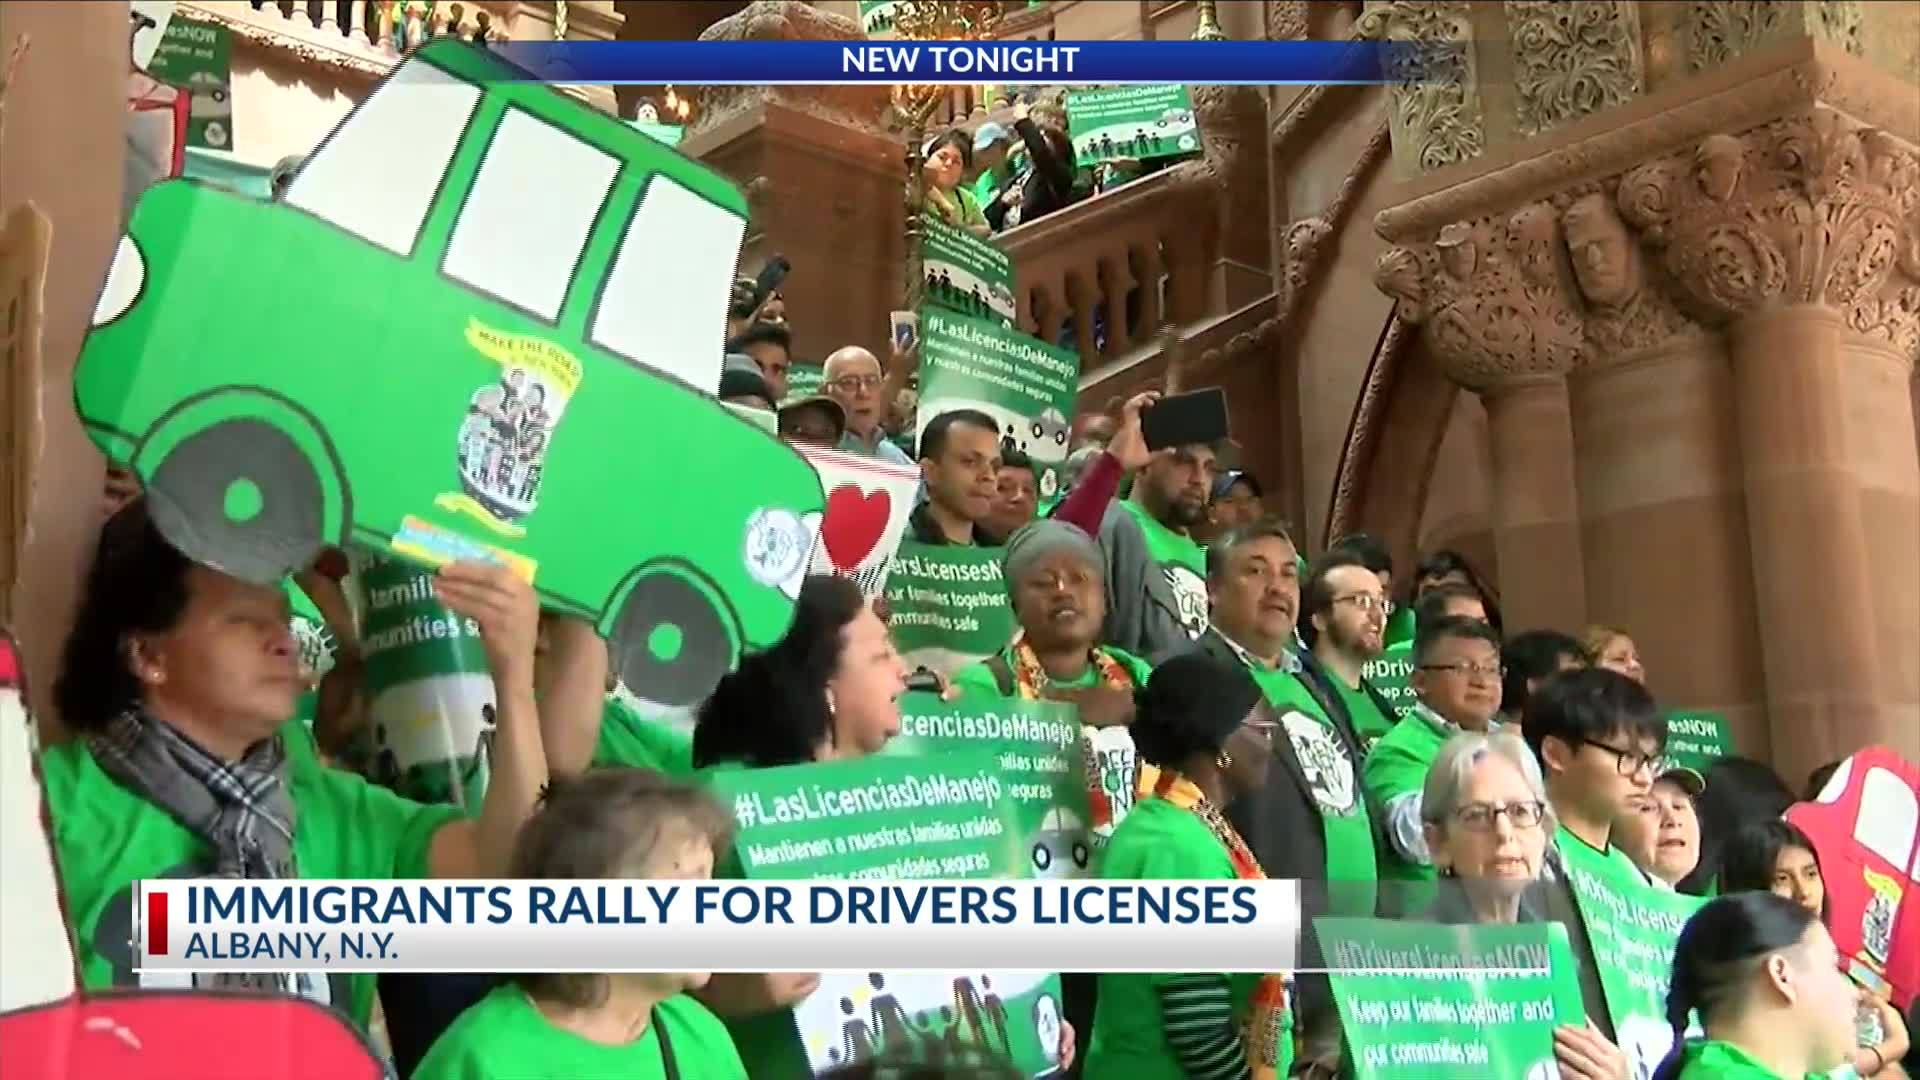 Immigrants_rally_for_Drivers_license_8_20190522033238